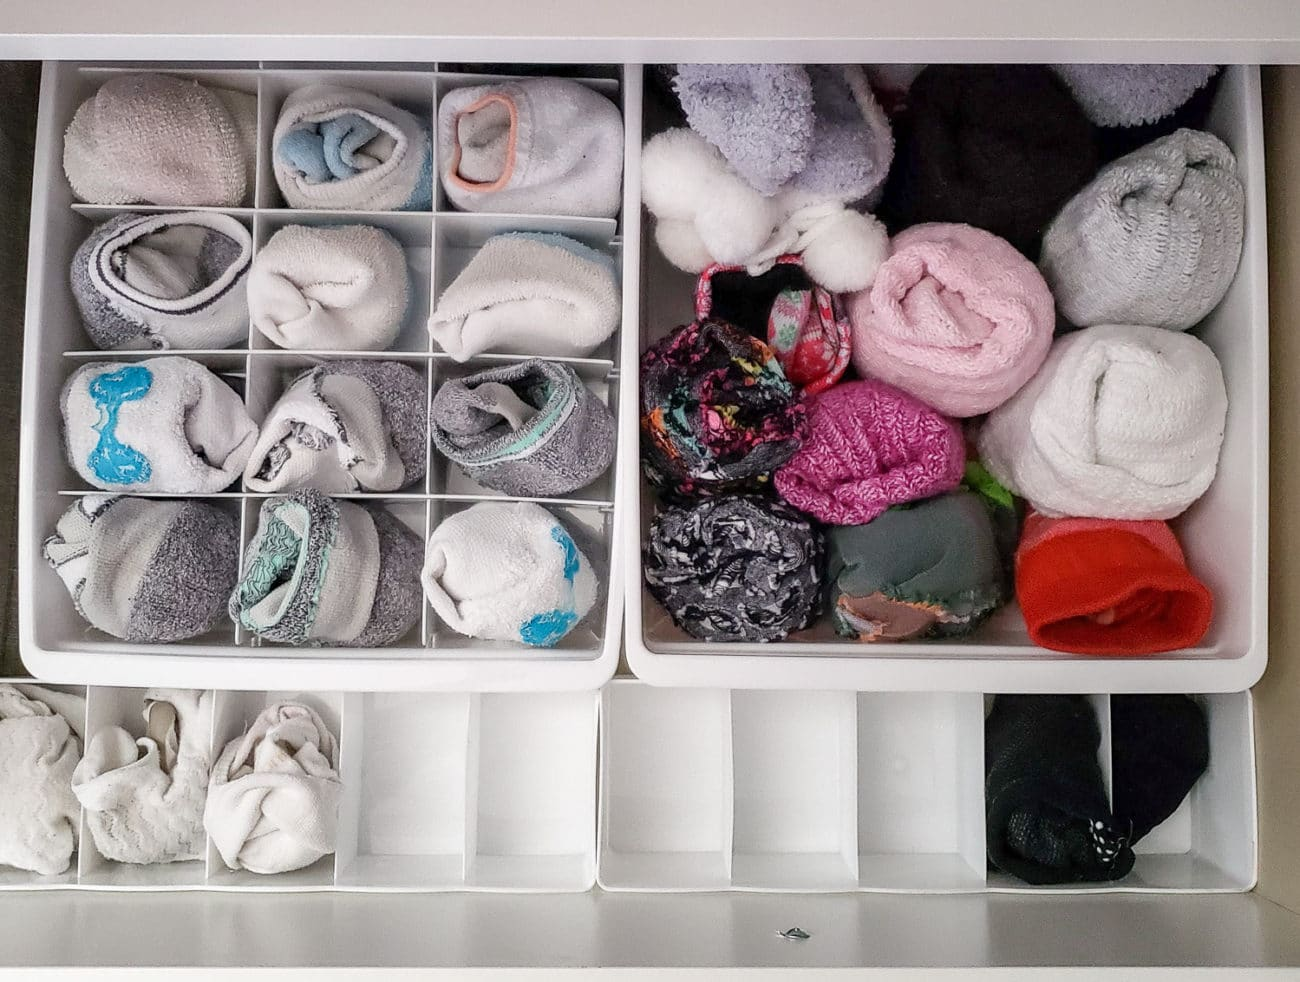 Storing and organizing socks in a dresser